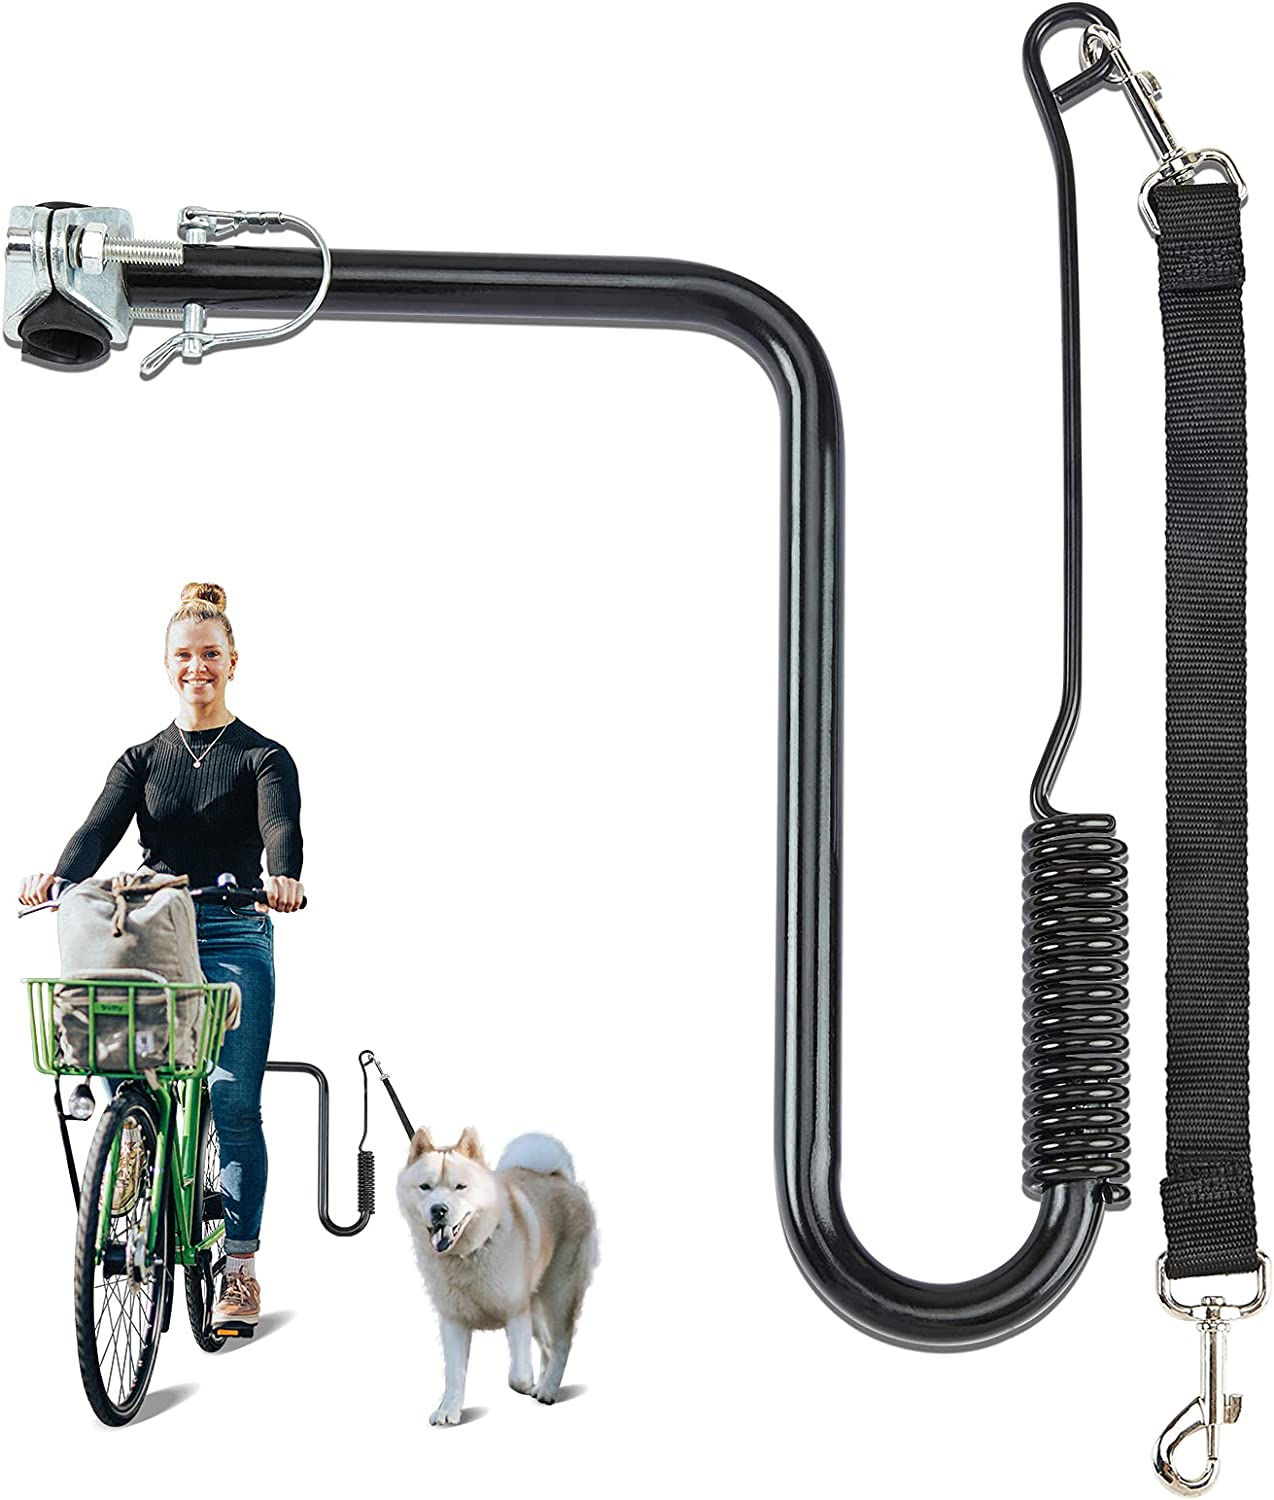 Ranking TOP1 Hands Free Dog Leash Bicycle Attachment Safety with A Impact Kit Louisville-Jefferson County Mall